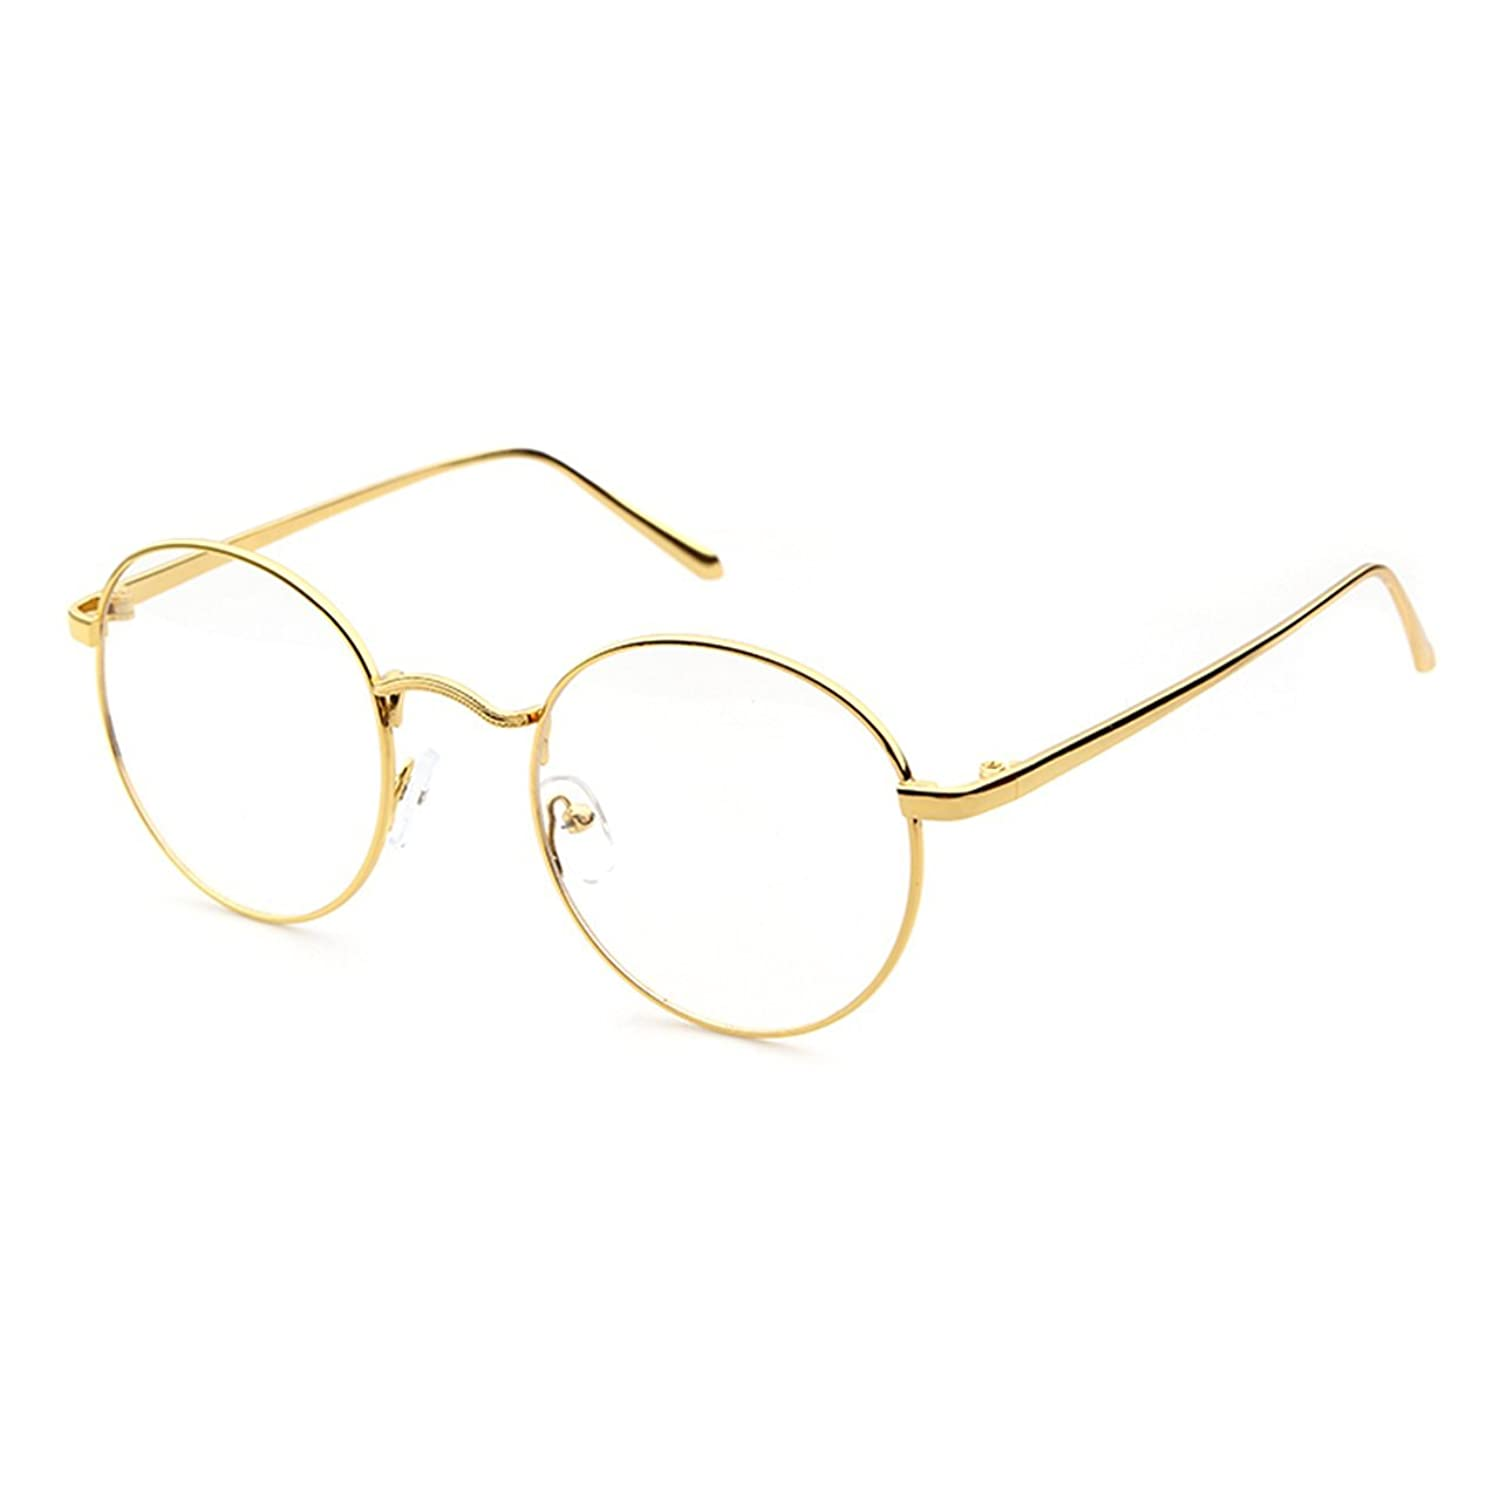 Adewu Men&Women Retro Round Designer Slender Metal Frame Reading Glasses by Amazon